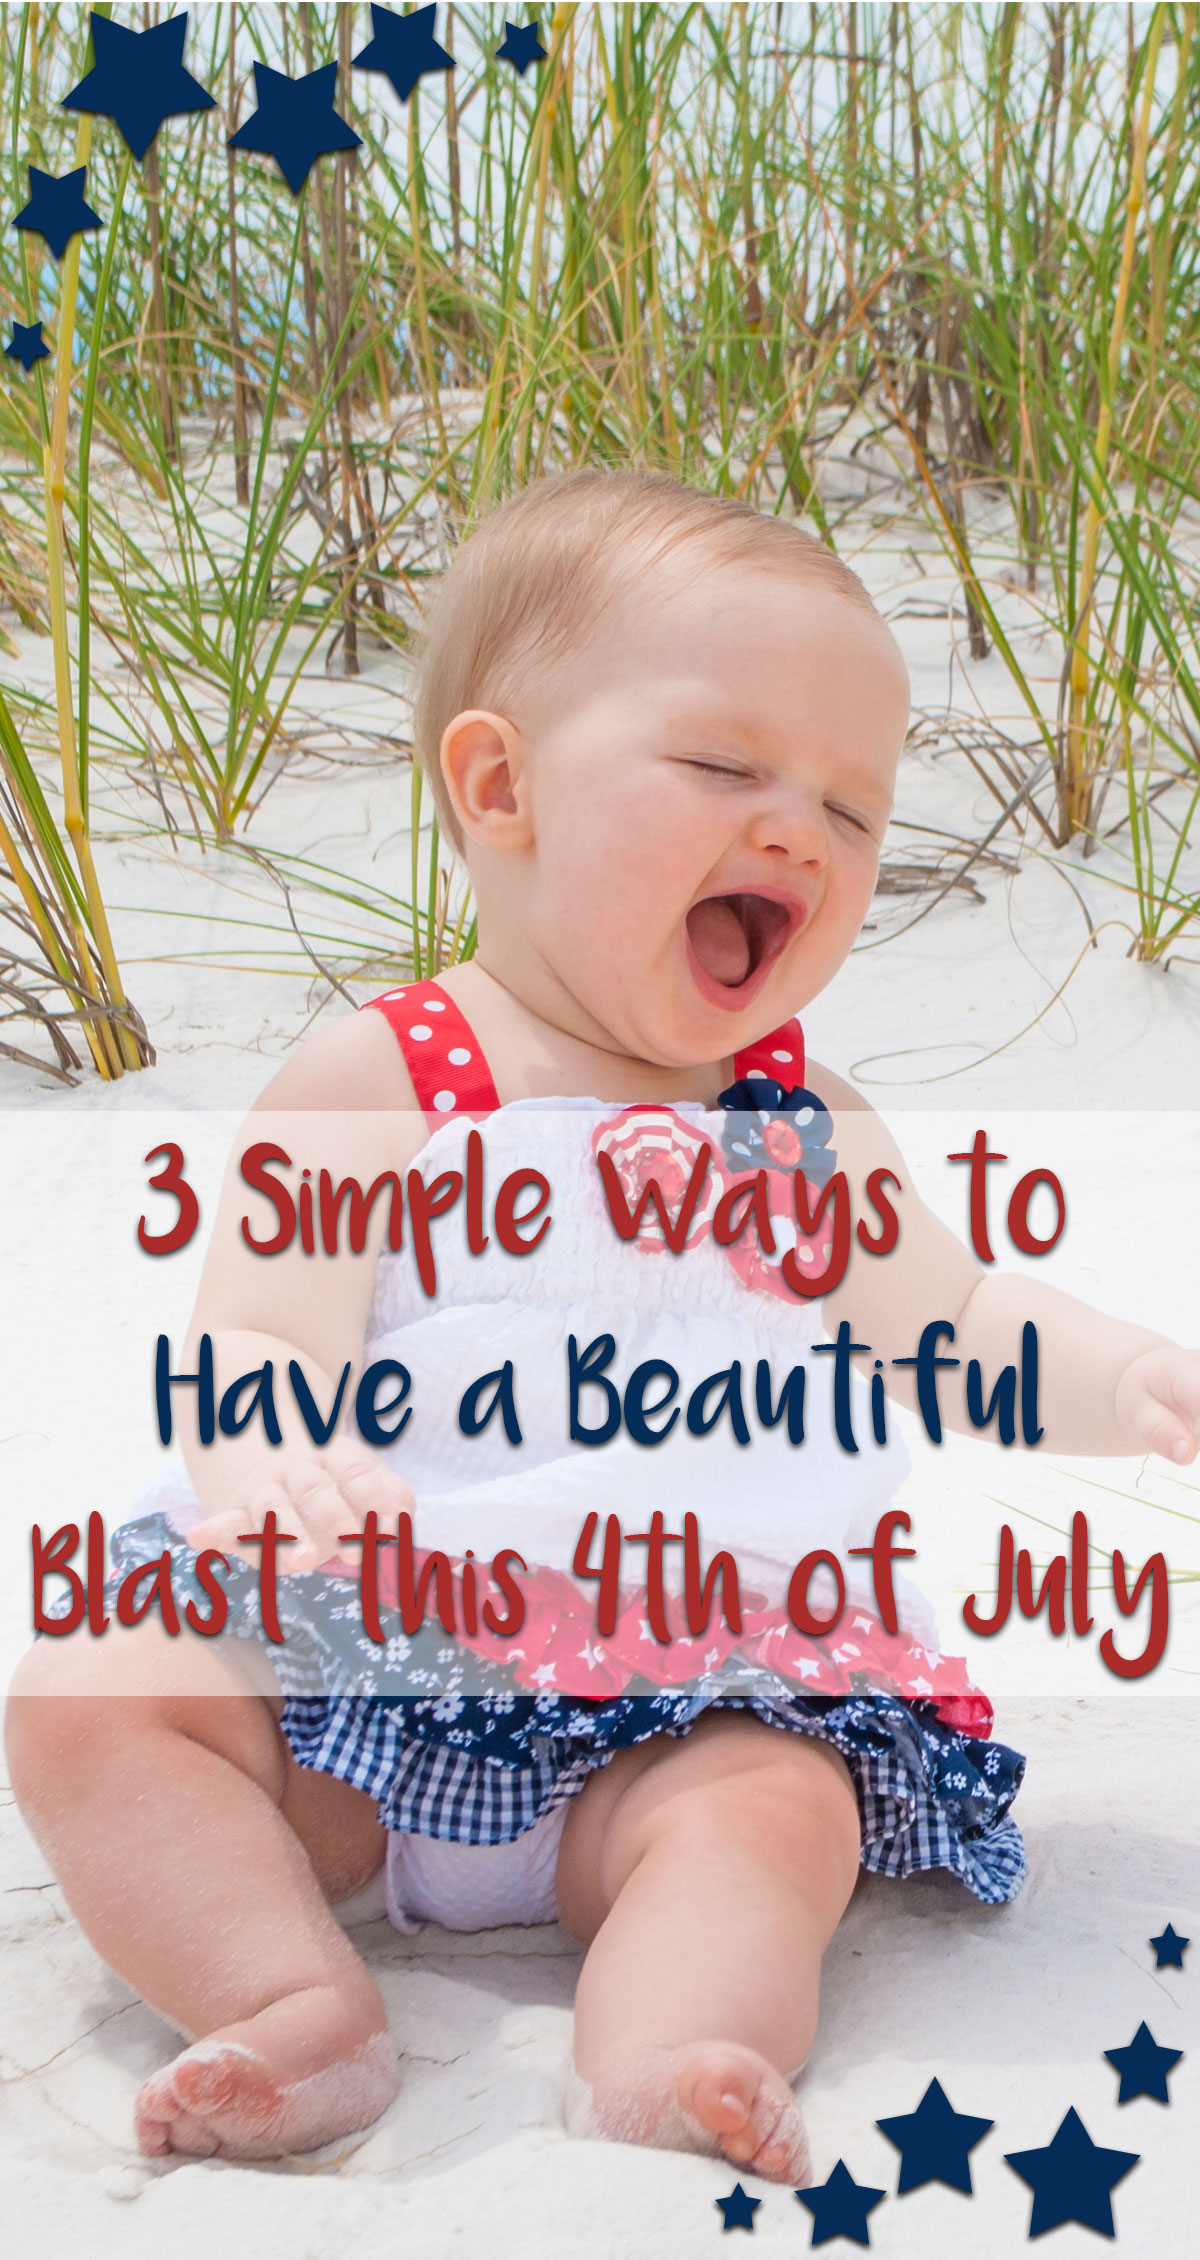 3 Simple Ways to Have a Beautiful Blast this 4th of July Pin